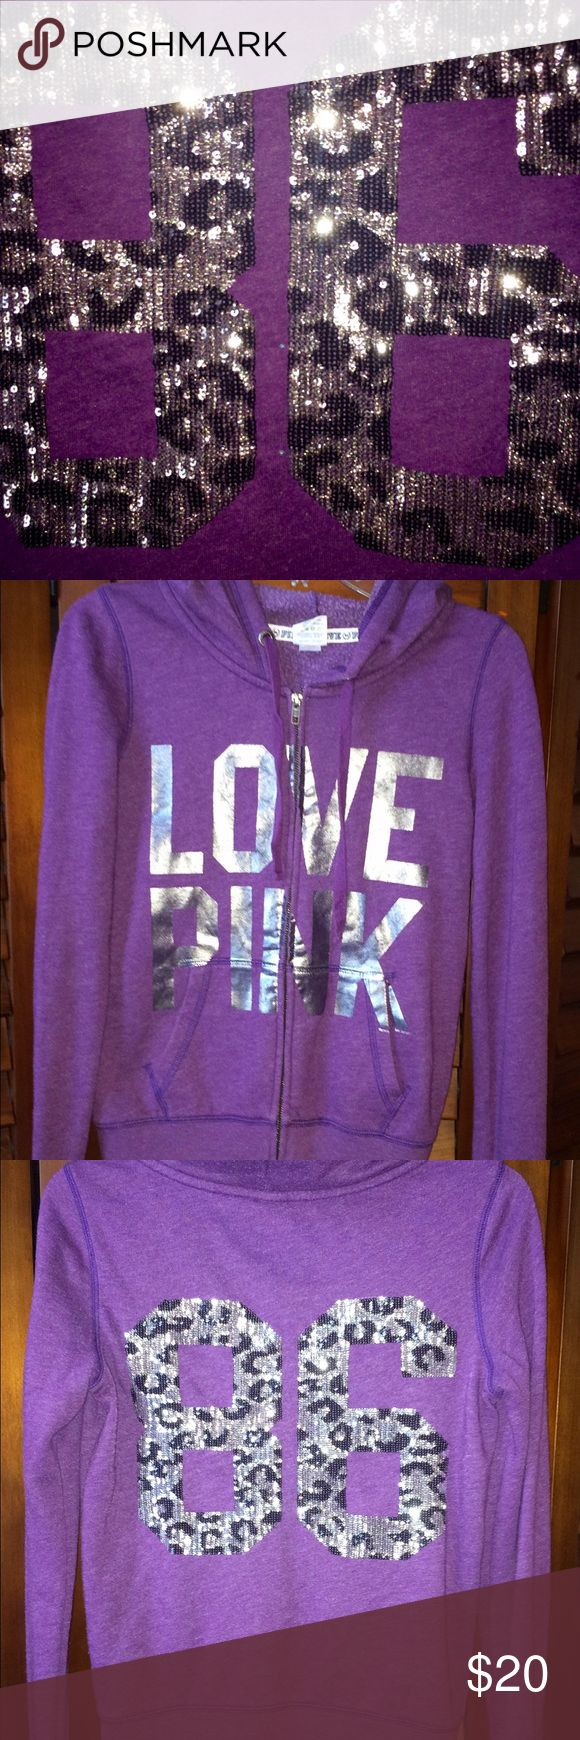 Victoria's Secret XS Purple Hoodie Bling 86 Zip up Victoria's Secret XS Purple Hoodie Bling 86 Zip up. Clean and ready to ship. Victoria's Secret Sweaters